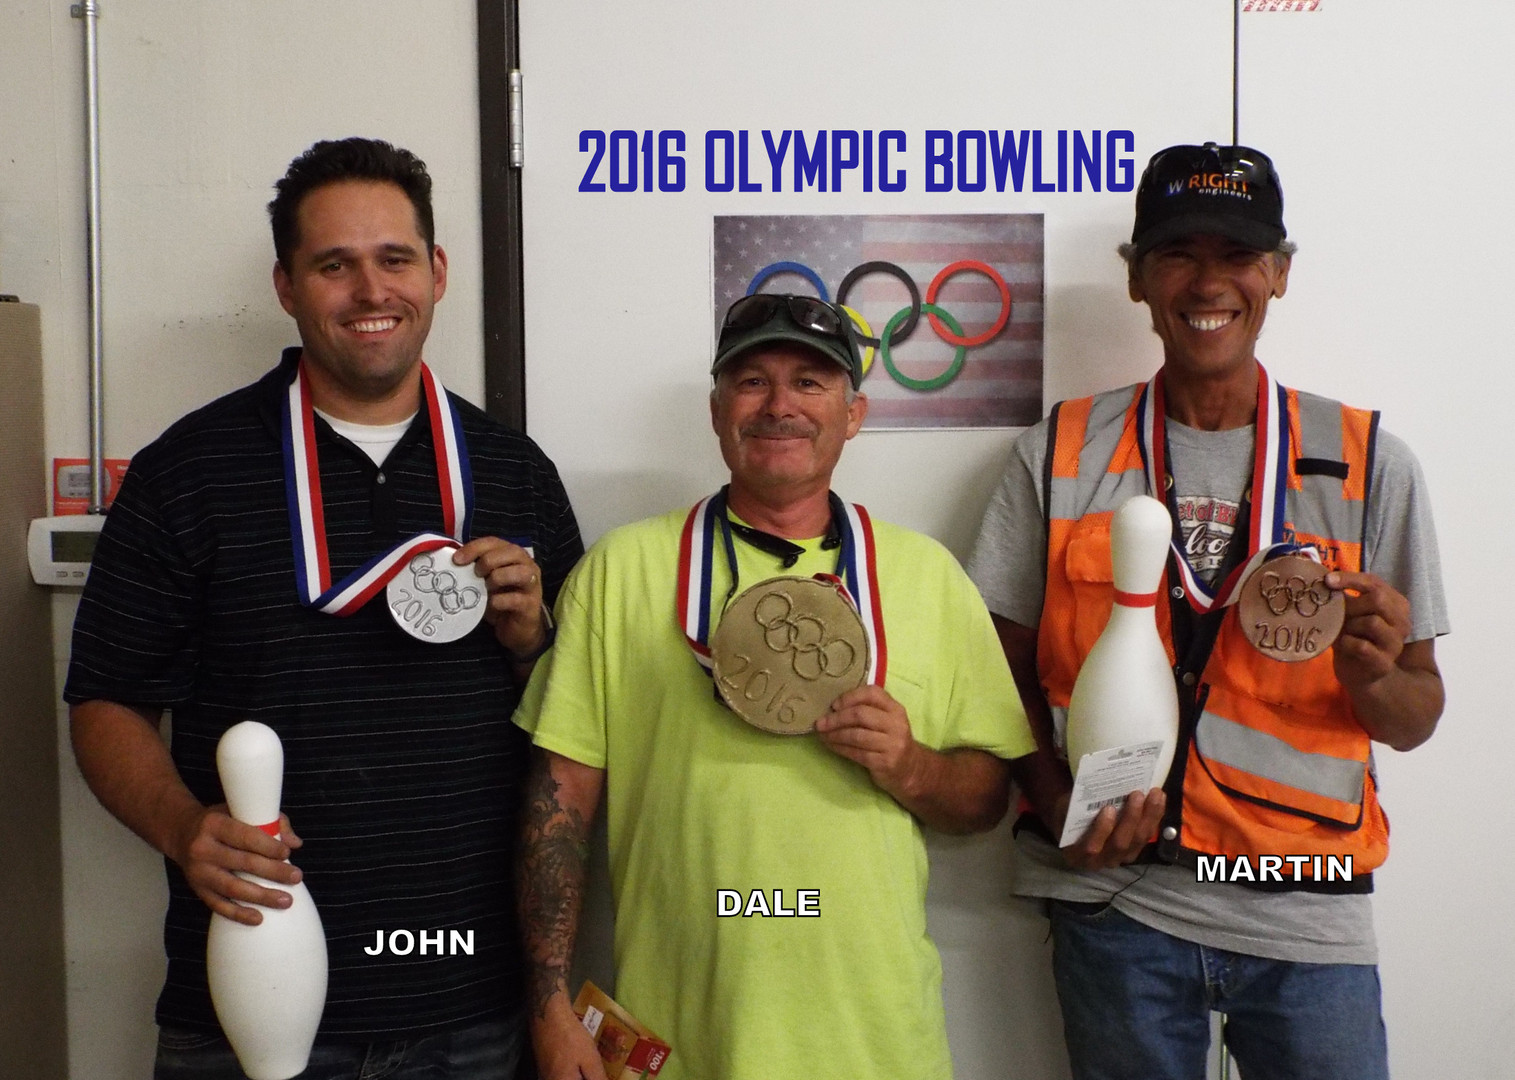 2016 Olympic Bowling Winners